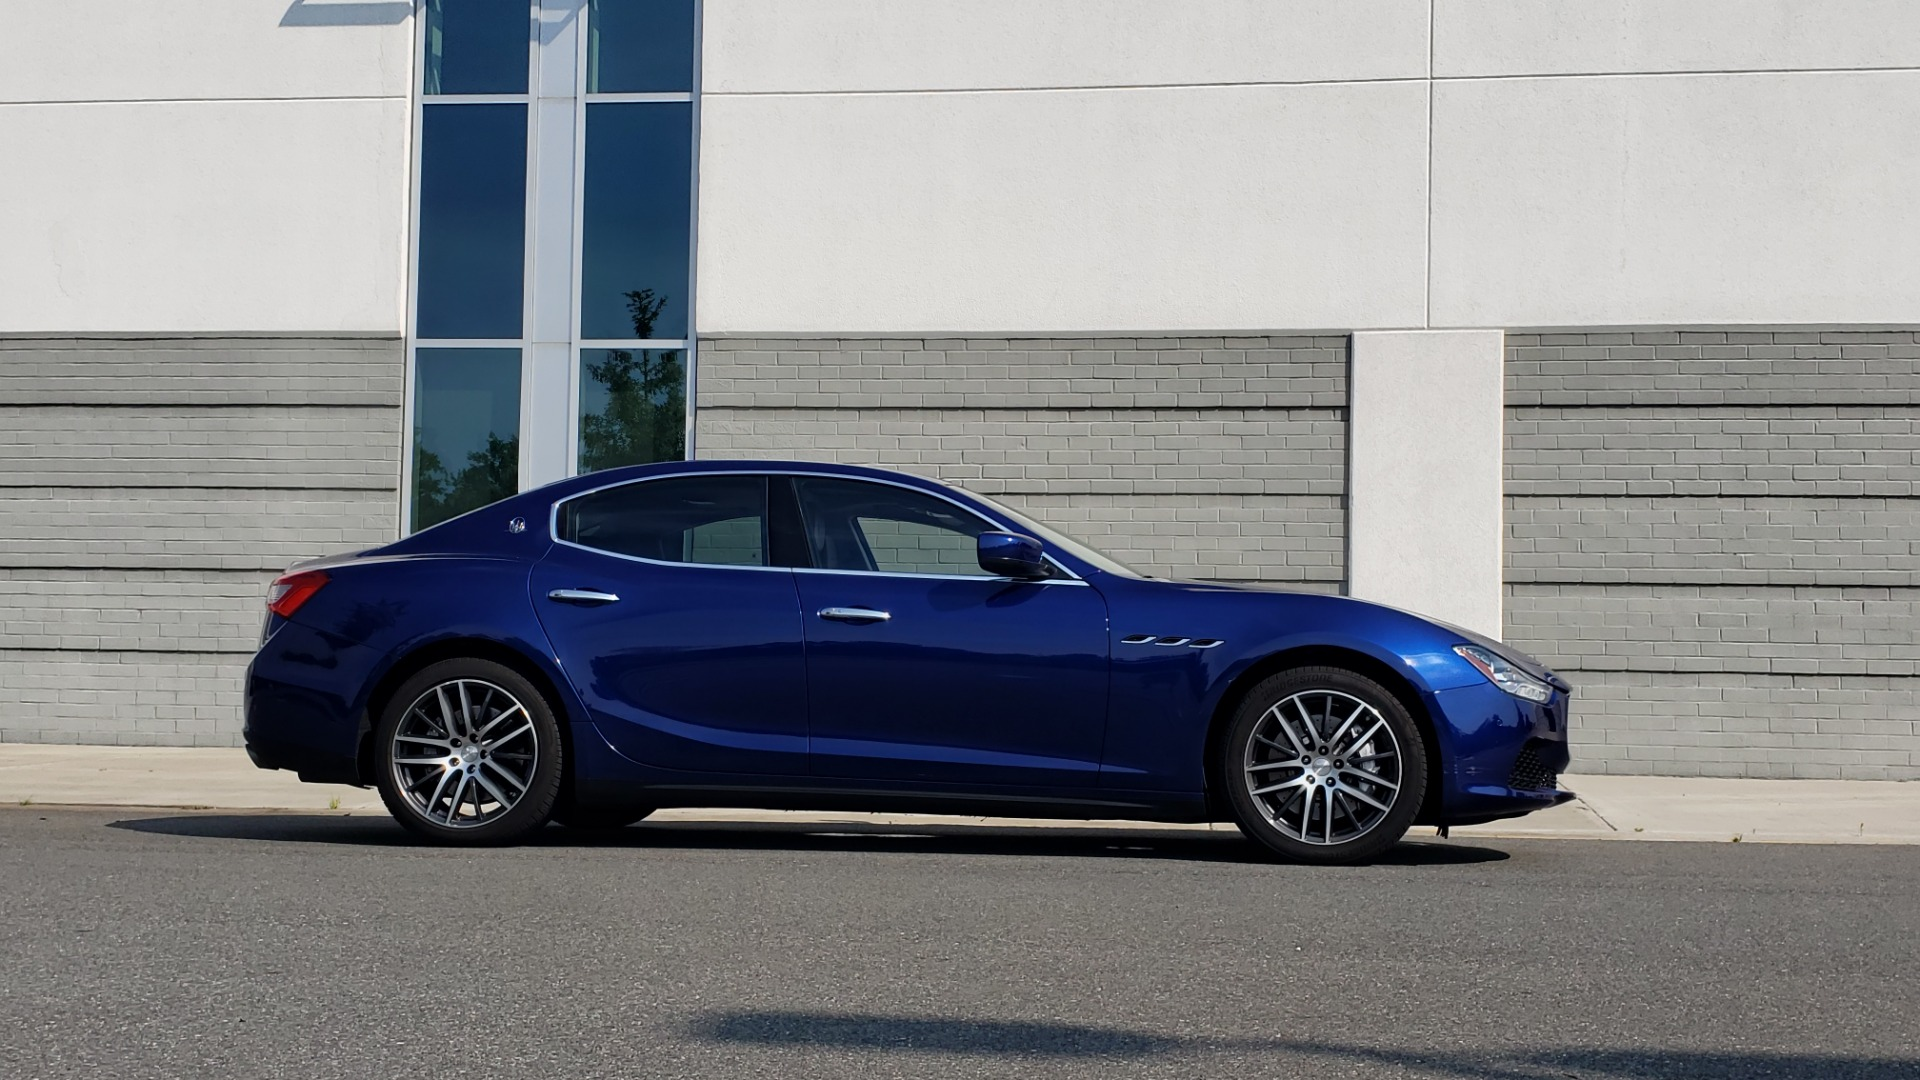 Used 2015 Maserati GHIBLI SEDAN / 3.0L V6 / 8-SPD AUTO / NAV / HTD STS / SUNROOF / REARVIEW for sale $24,495 at Formula Imports in Charlotte NC 28227 9